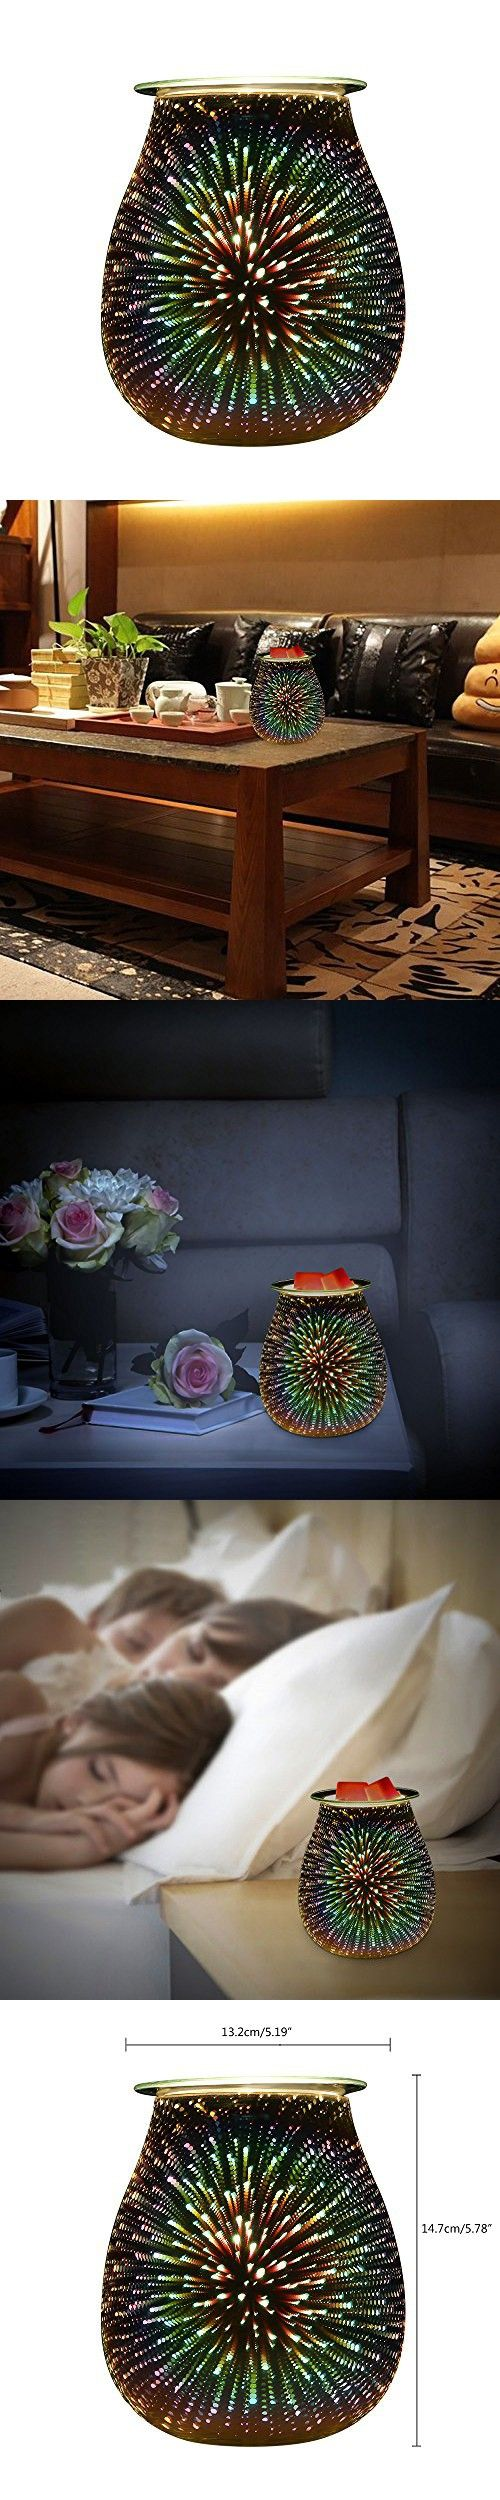 COOSA 3D Effect Starburst Fireworks Electric Oil Warmer, Beautiful Glass Wax Tart Burner Starburst Night Light Aroma Decorative Lamp with 3D Effect for Gifts, Decor and Parties (Multicolor)